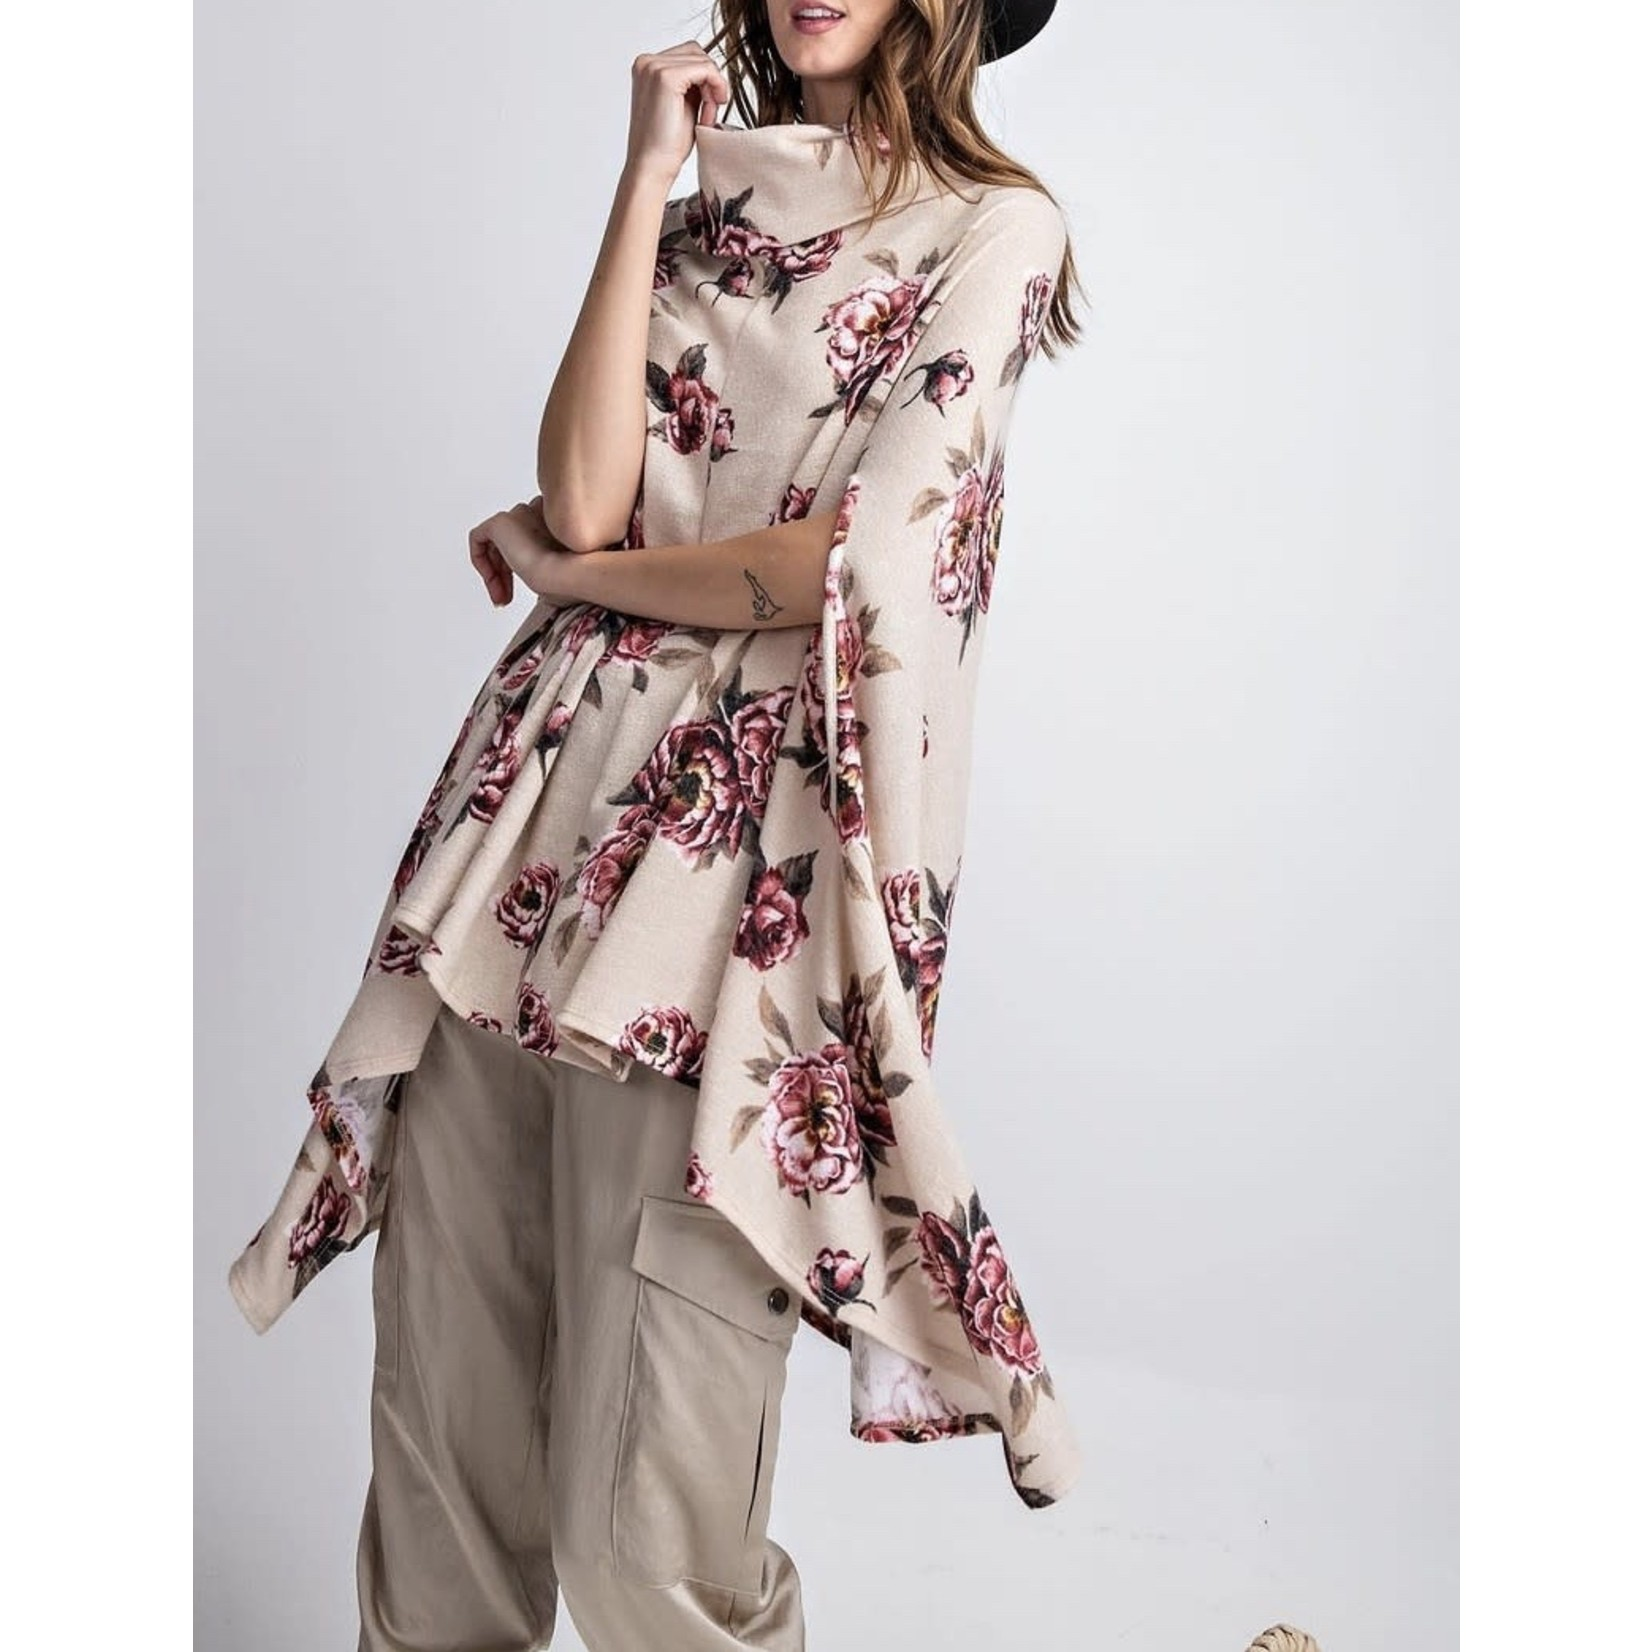 Easel Floral Oversized Cowl Neck Poncho